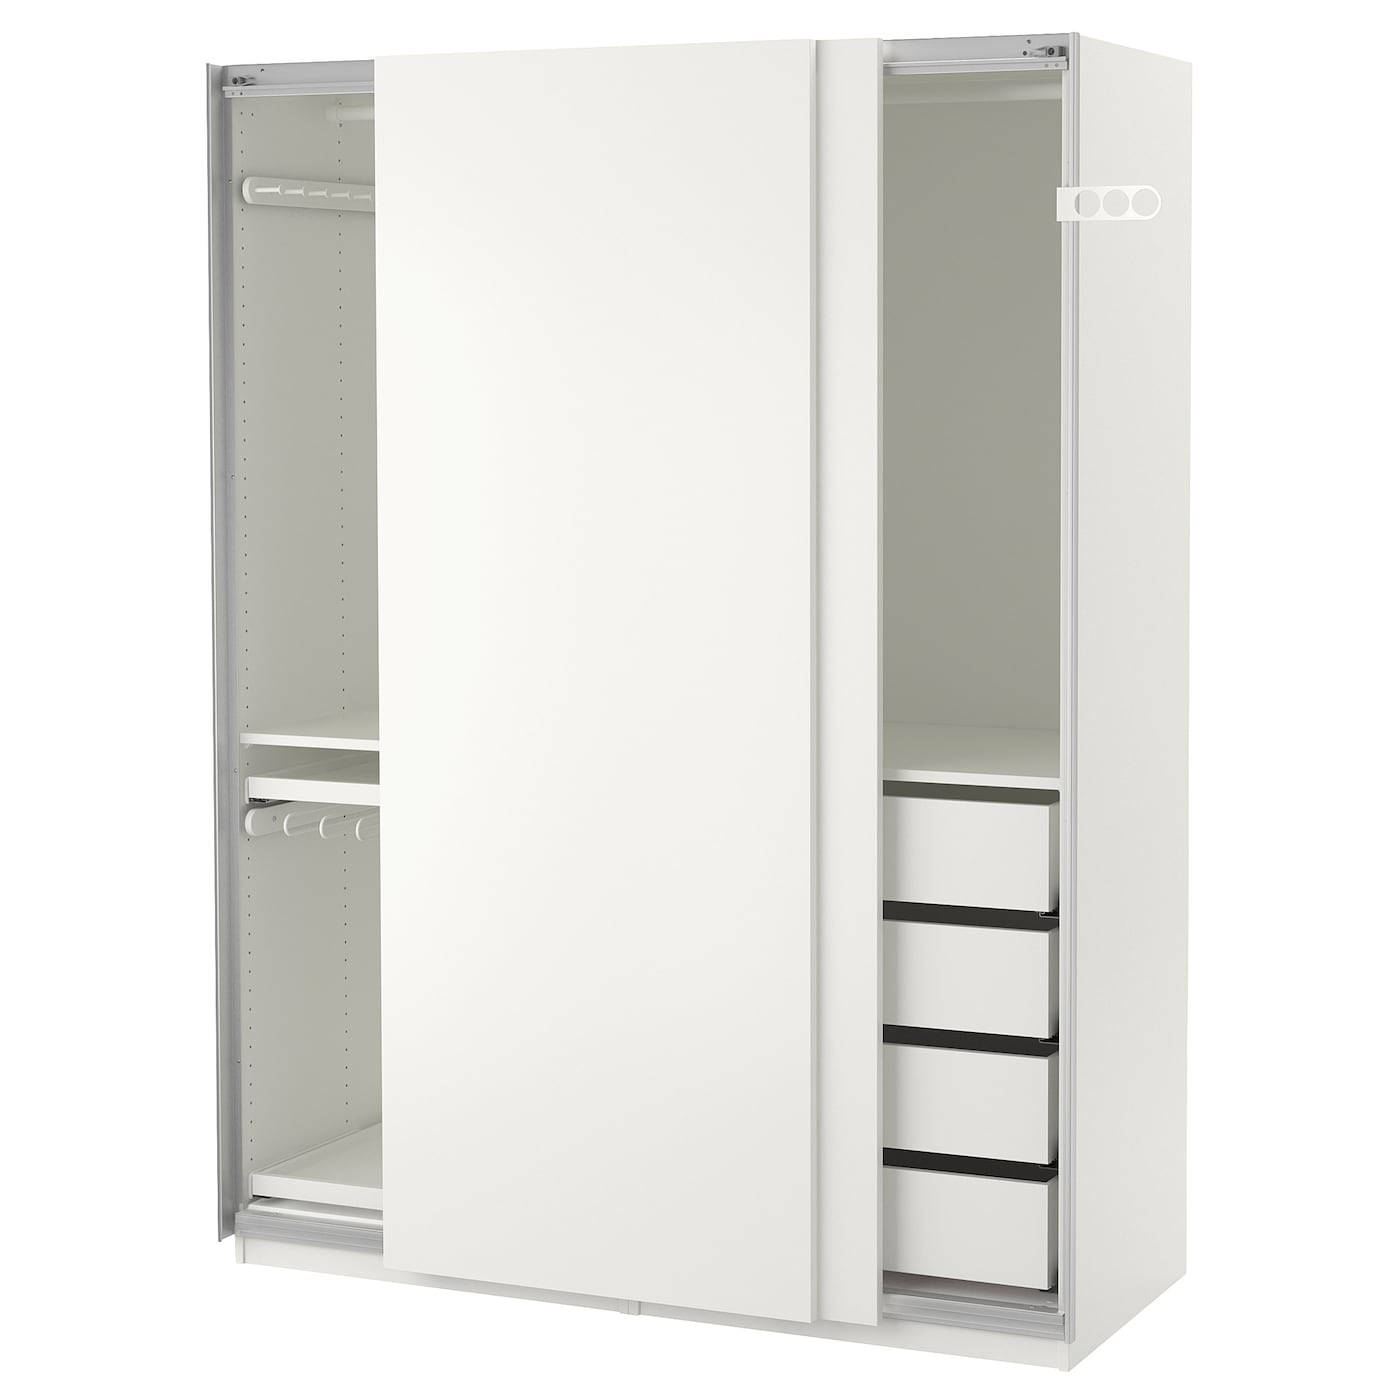 pax wardrobe white hasvik white pax wardrobe white hasvik white 150x66x201 cm ikea pax. Black Bedroom Furniture Sets. Home Design Ideas